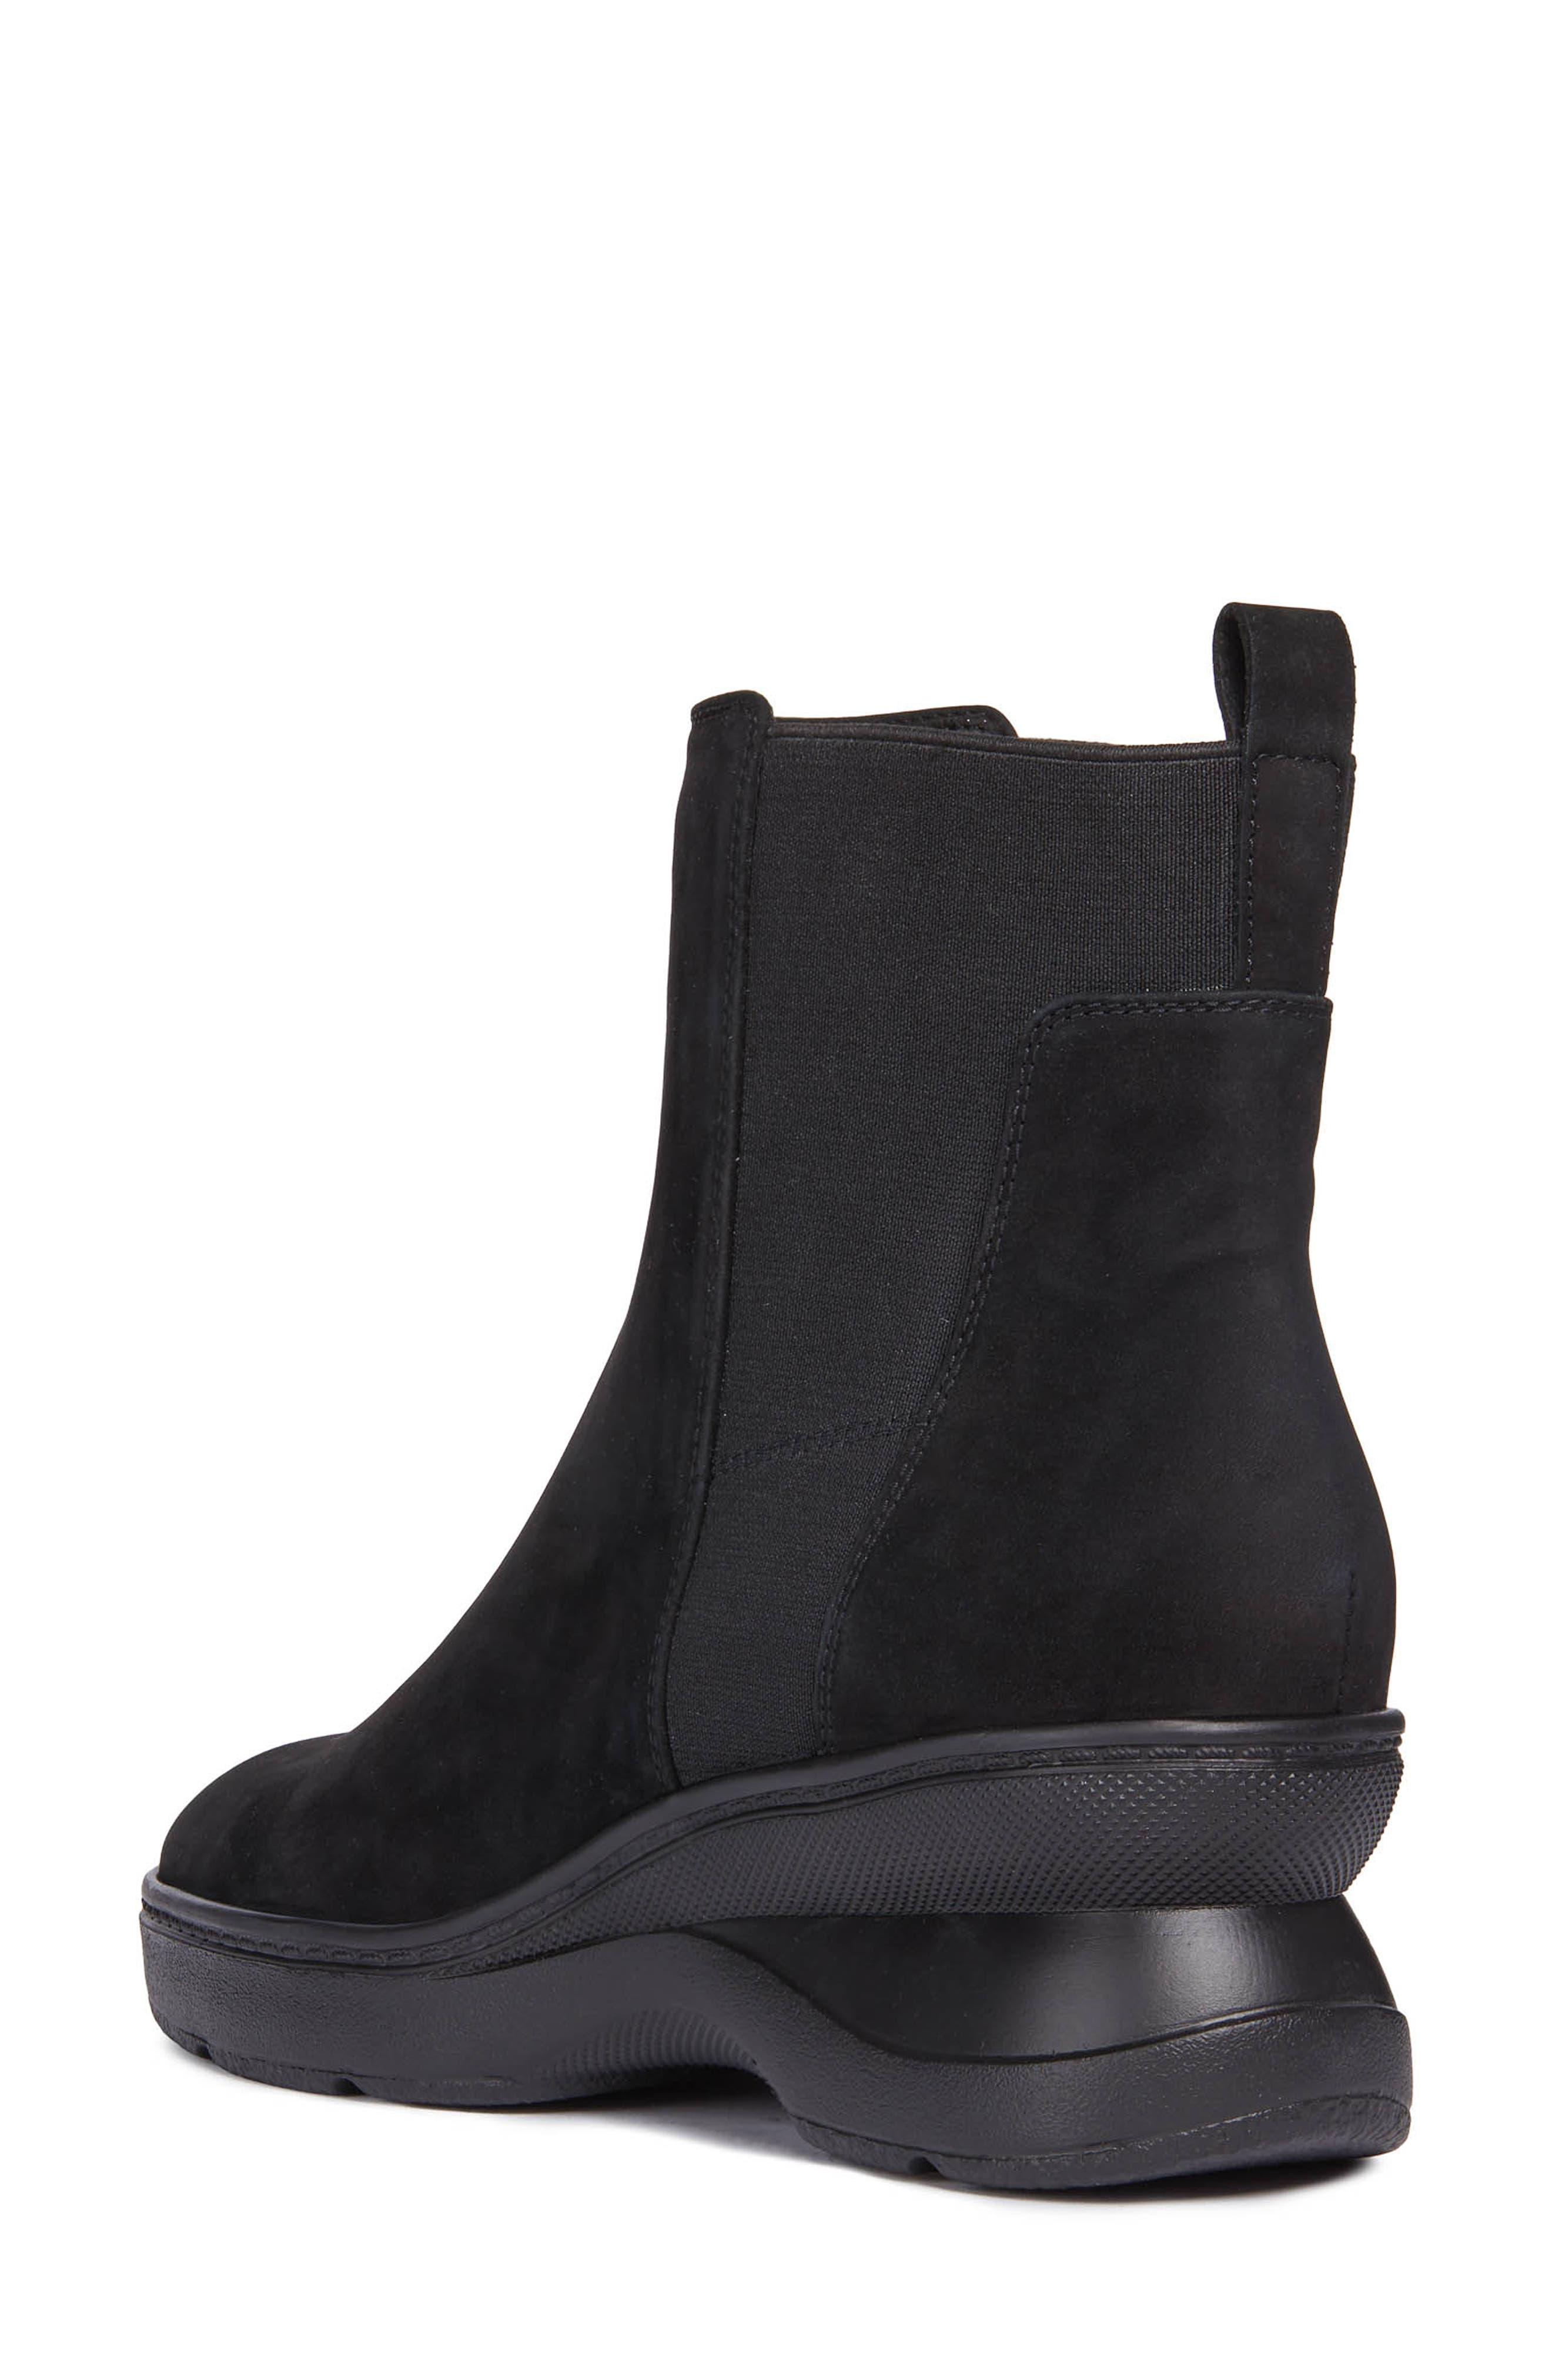 255735709a2e6 Women s Geox Booties   Ankle Boots